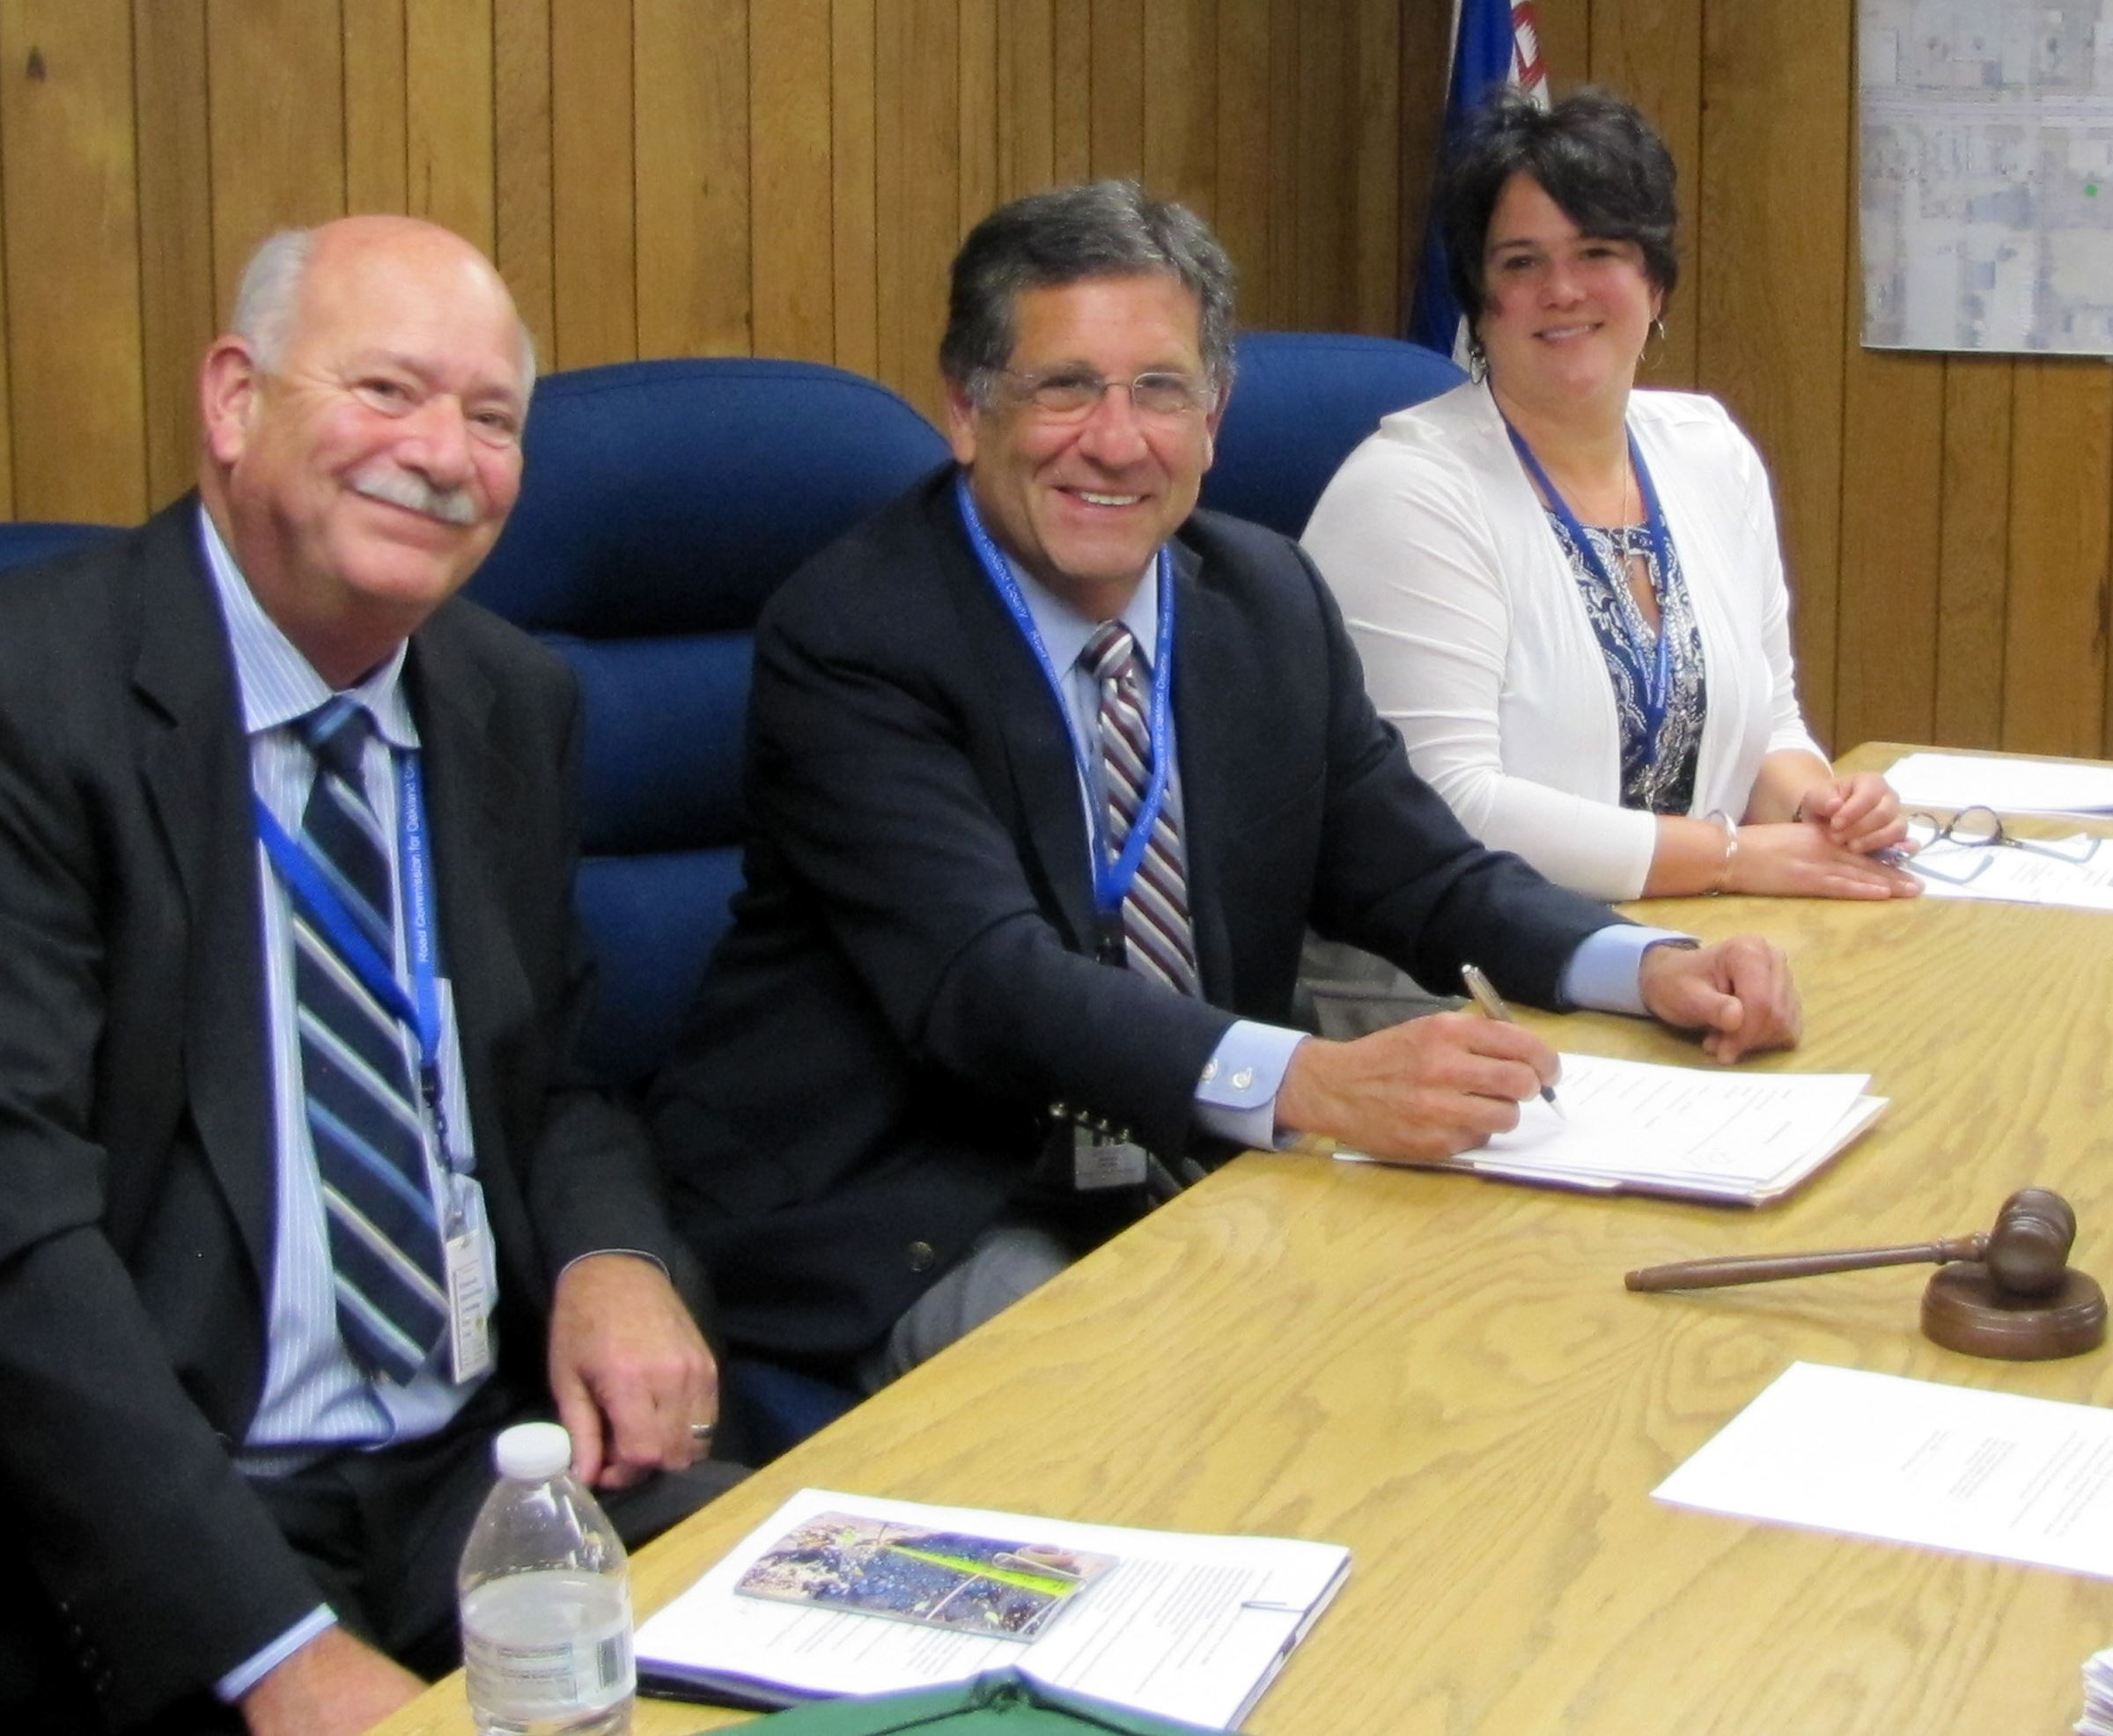 Budget approved.  The RCOC Board approves the FY 2020 budget. Shown are (left to right): Vice Chairm